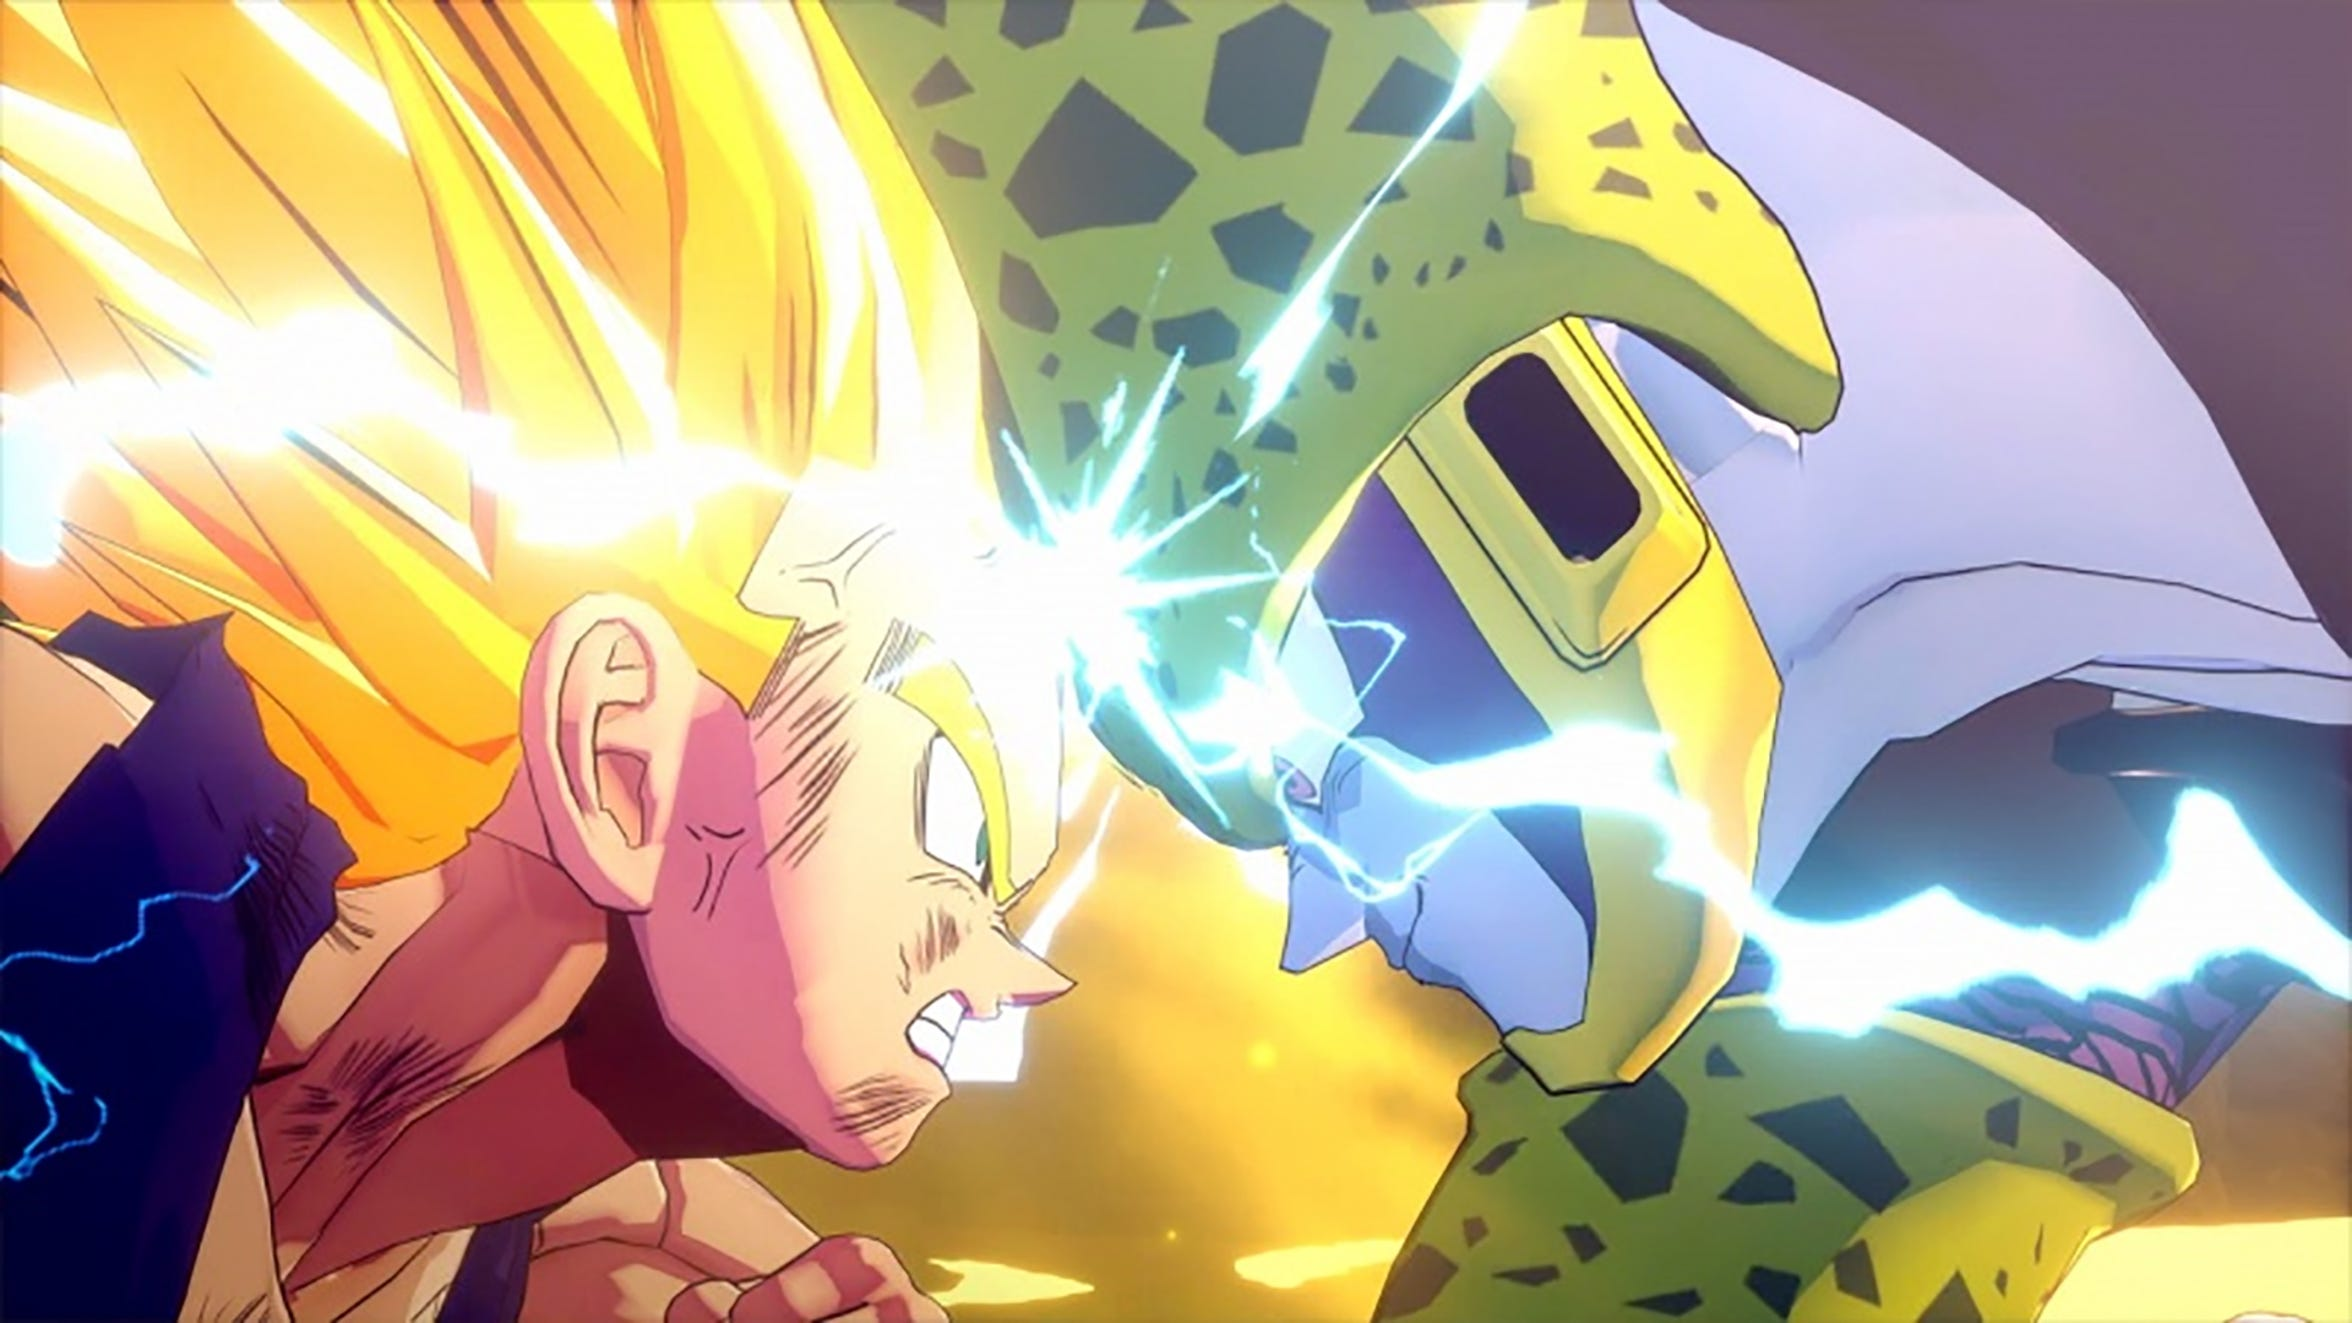 Gohan vs. Cell in Dragon Ball Z Kakarot for the PS4 and Xbox One.